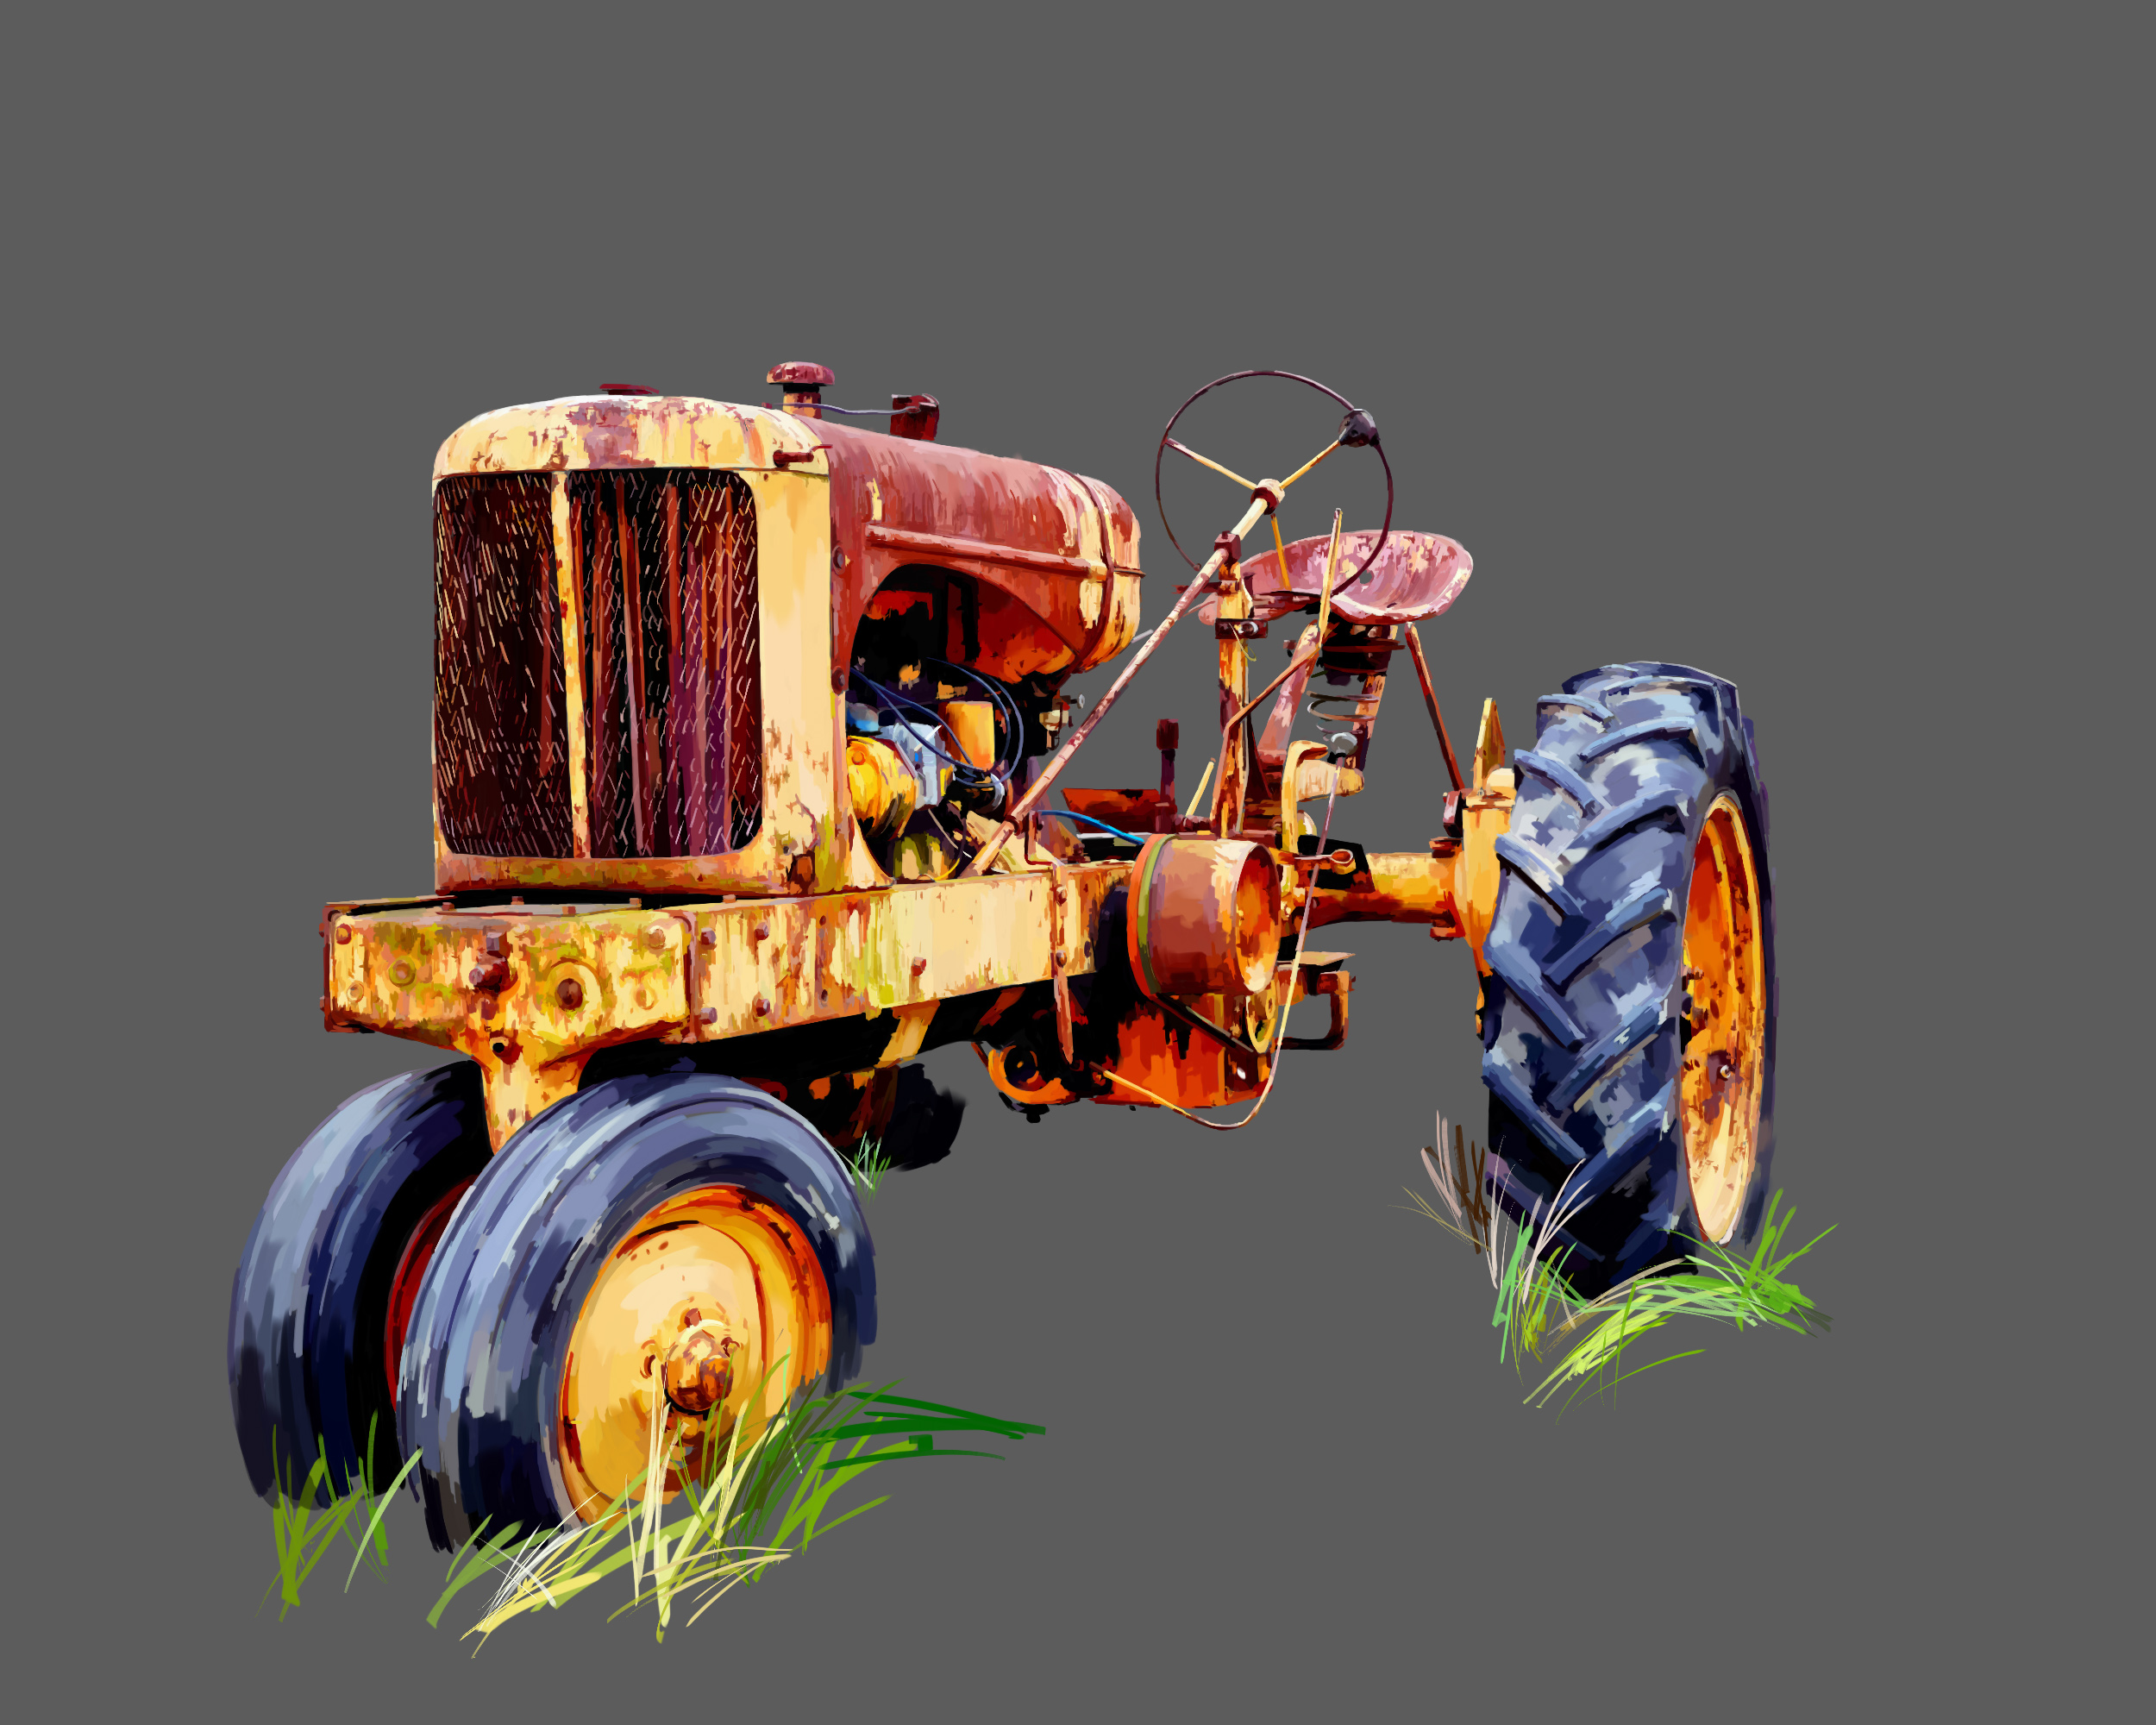 Red and yellow tractor.jpg